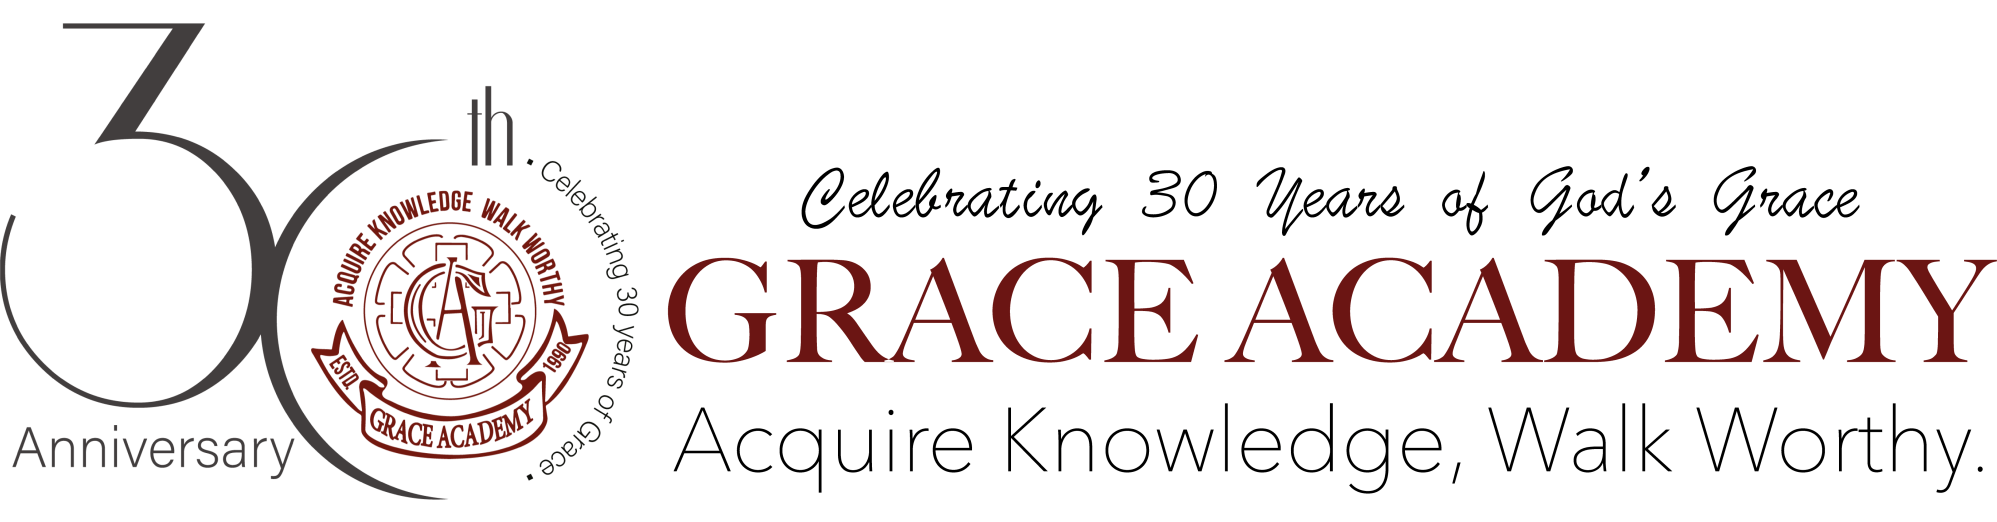 hight resolution of Grace Academy   A School With A Difference